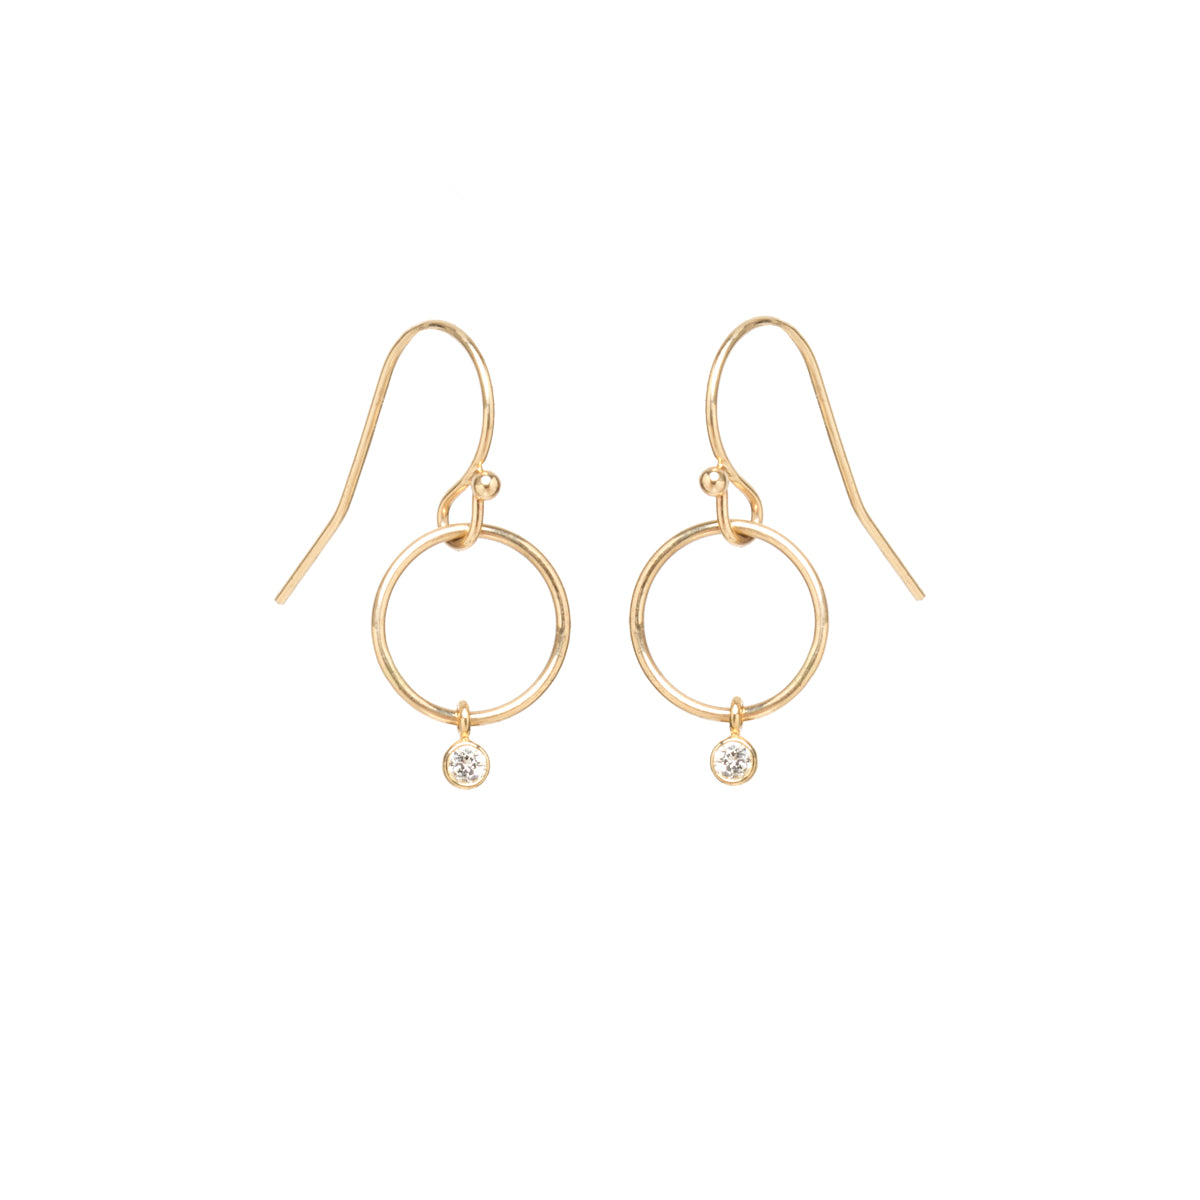 Zoë Chicco 14kt Yellow Gold Diamond Tiny Drop Circle Earrings